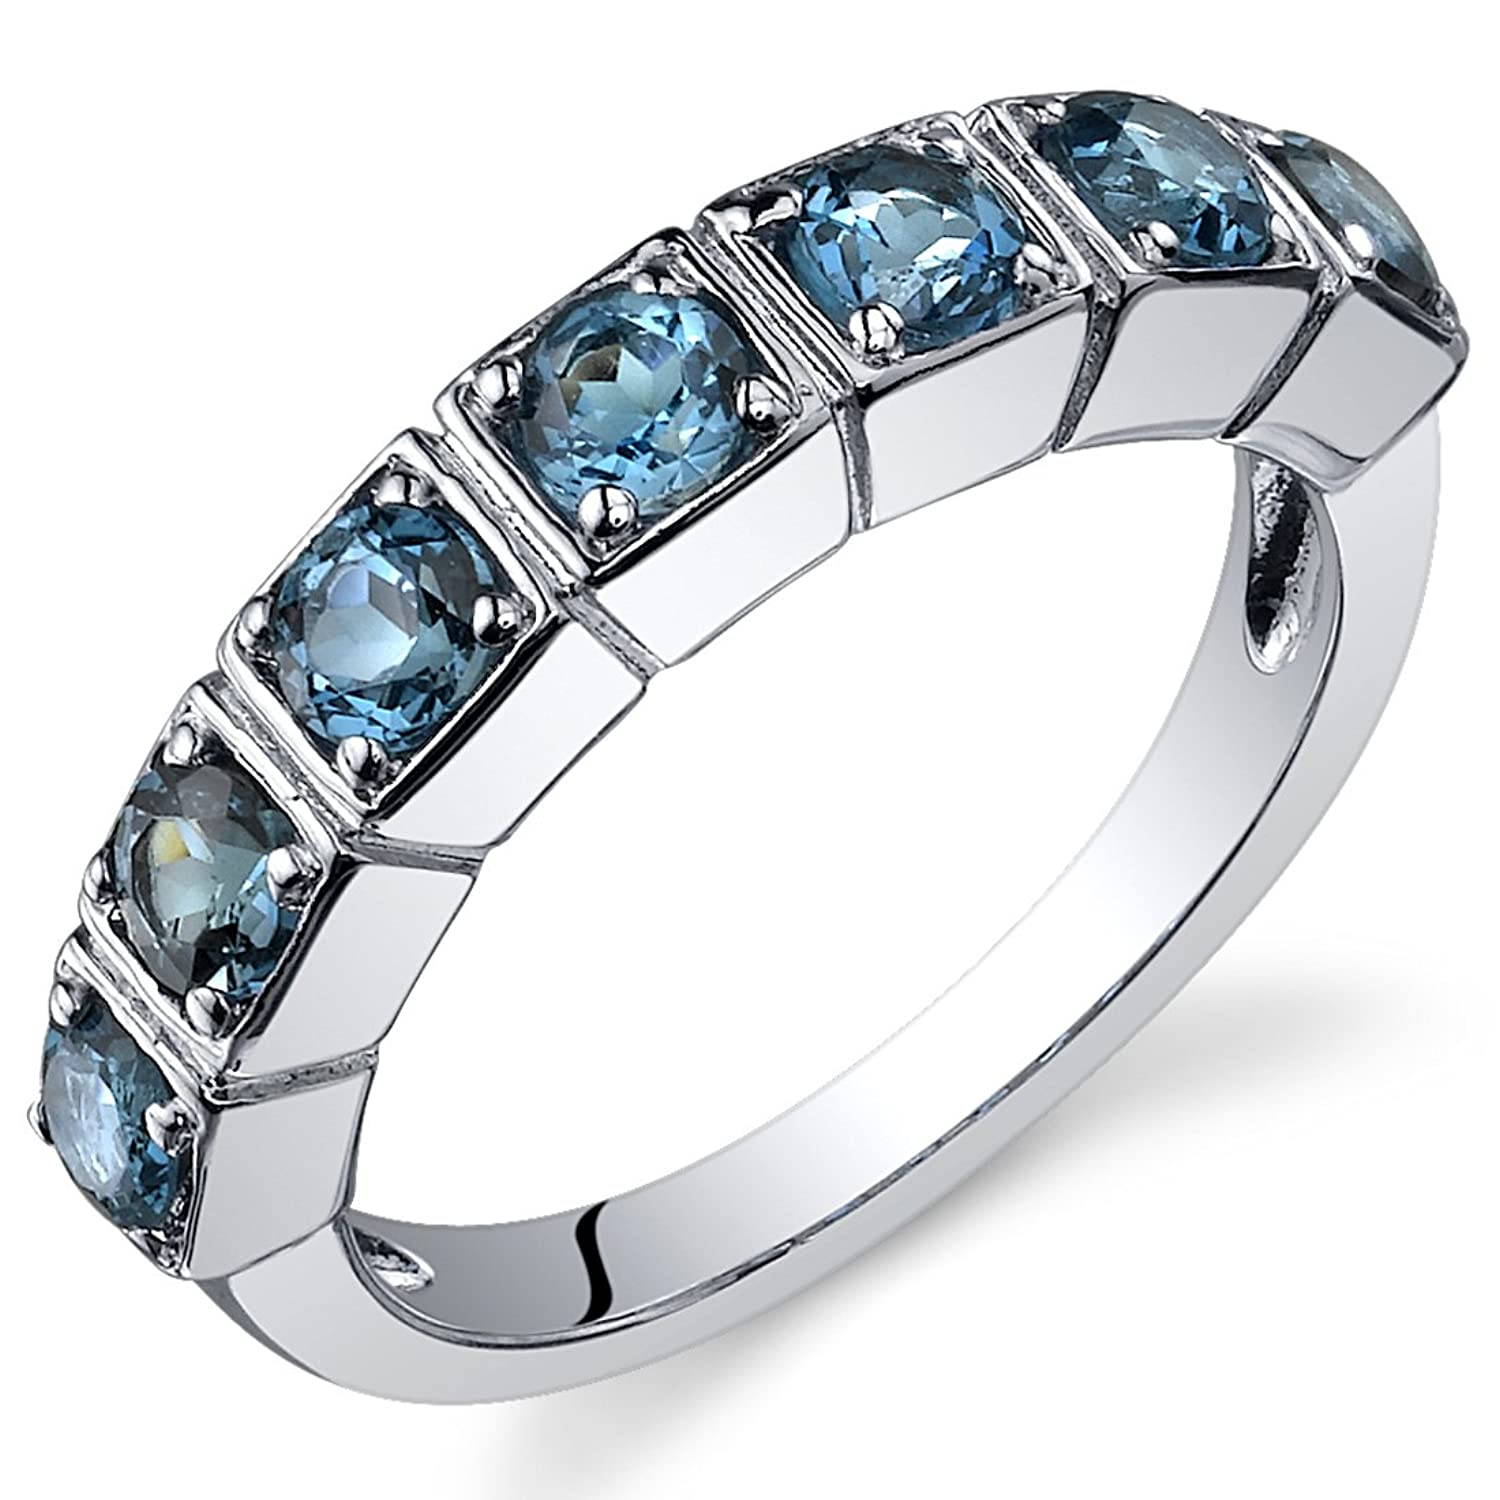 wedding with jewelry silver engagement sterling rings produit for dancing yl topaz women stone fine natural